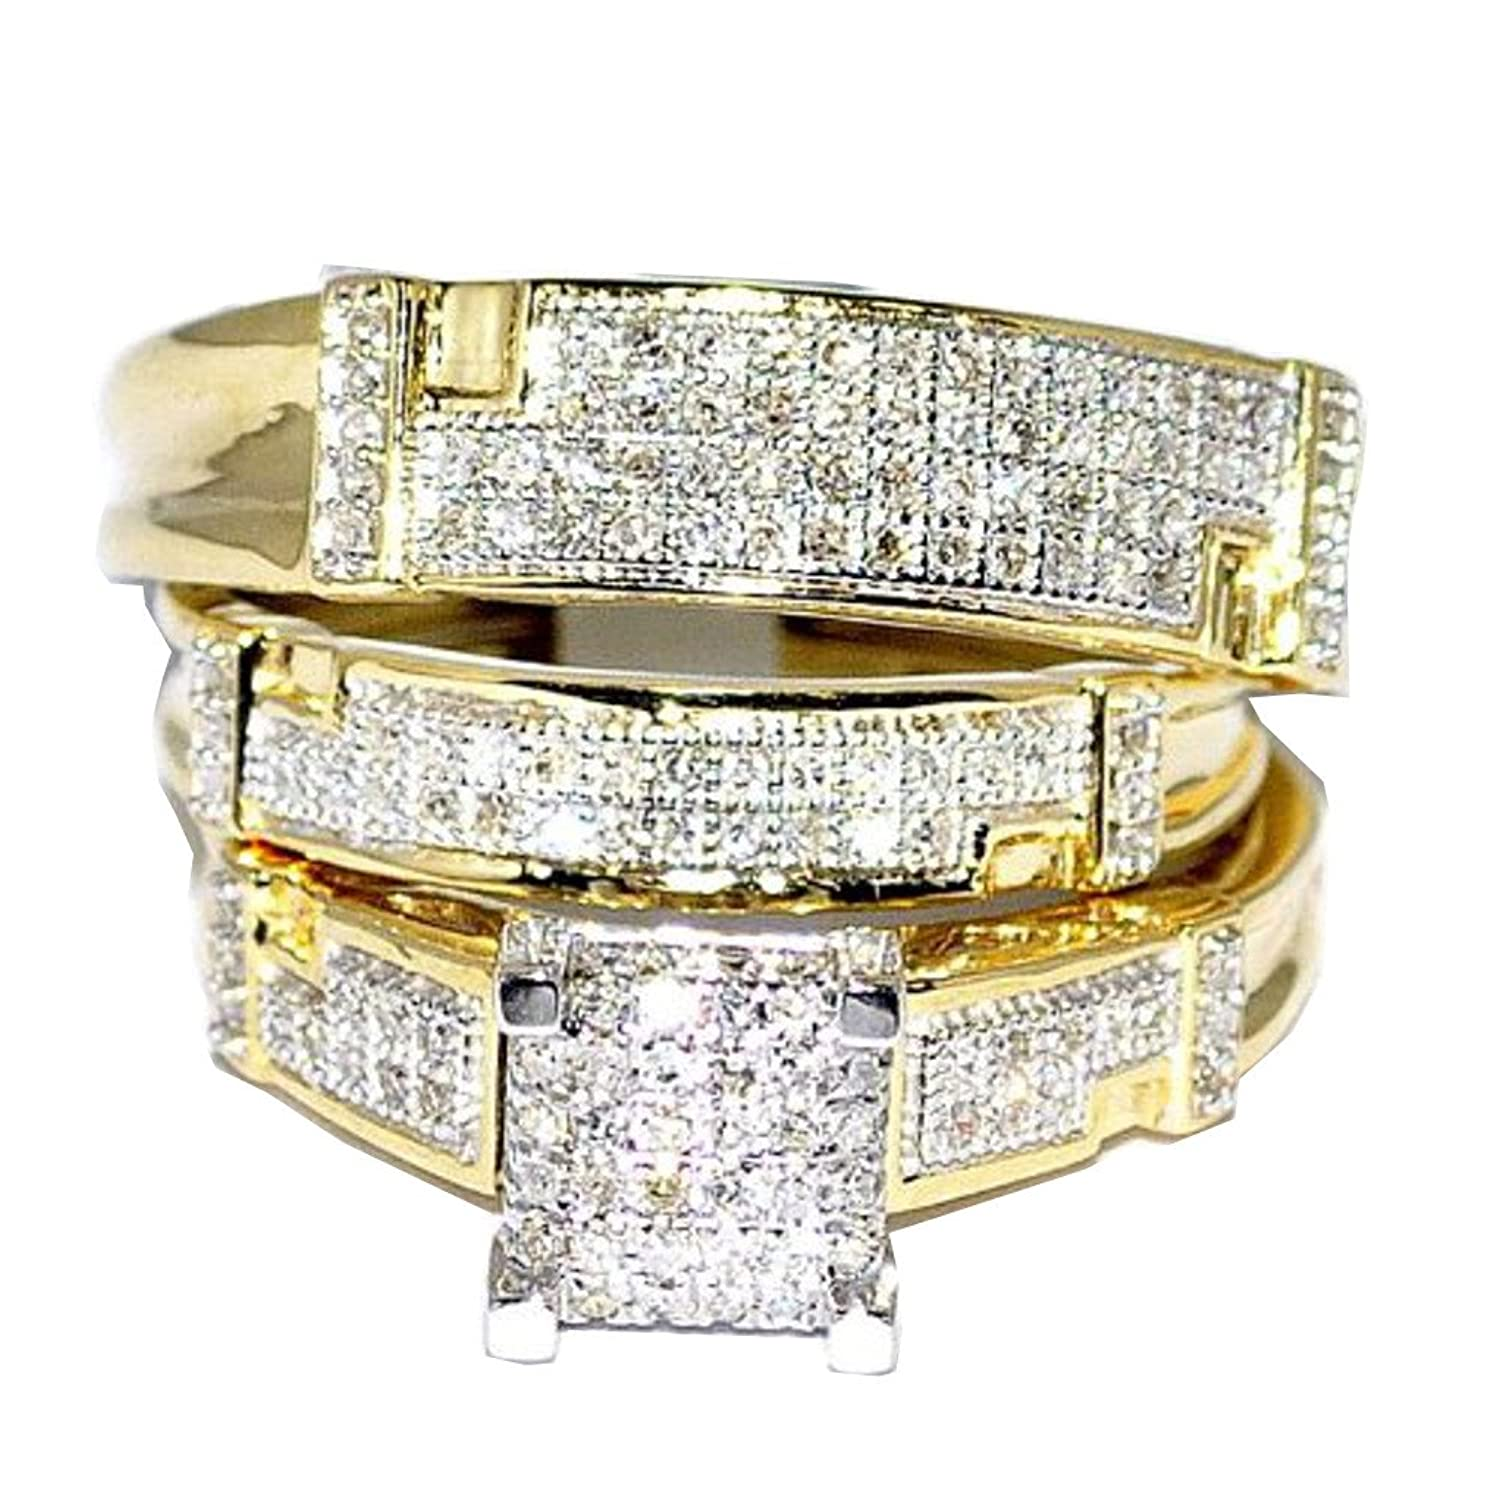 amazoncom yellow gold trio wedding set mens women rings real 12cttw diamonds pave i2i3 clarity ij color jewelry - Wedding Ring Sets Cheap